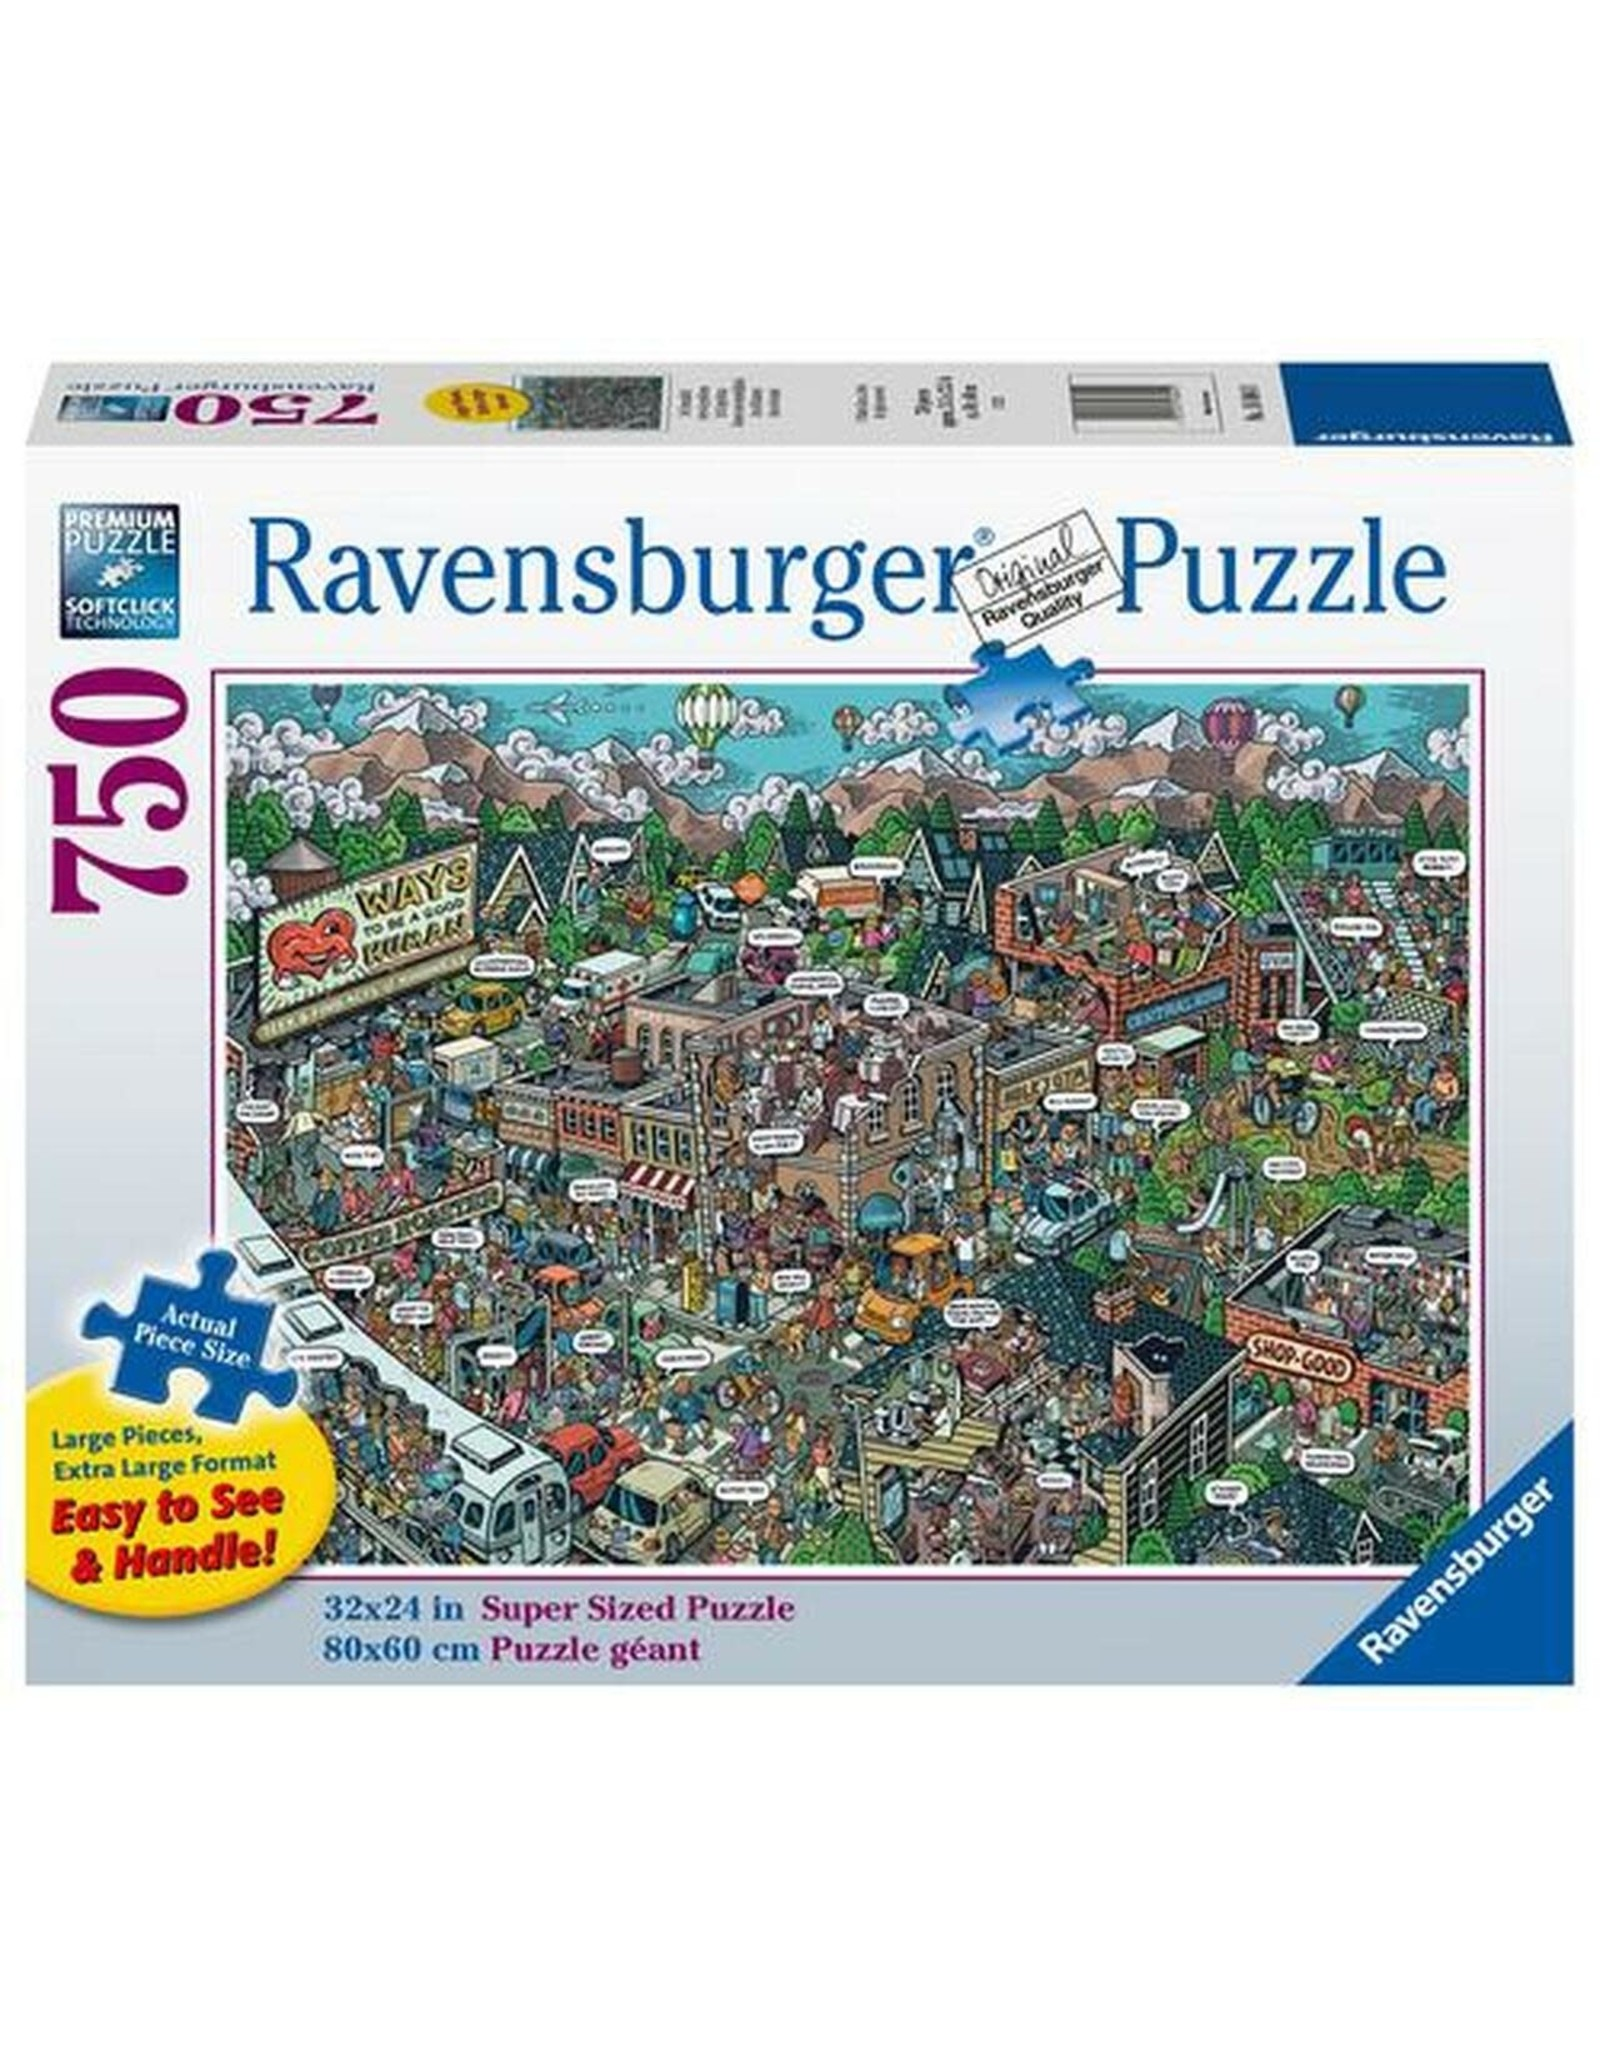 Ravensburger Acts of Kindness 750pc